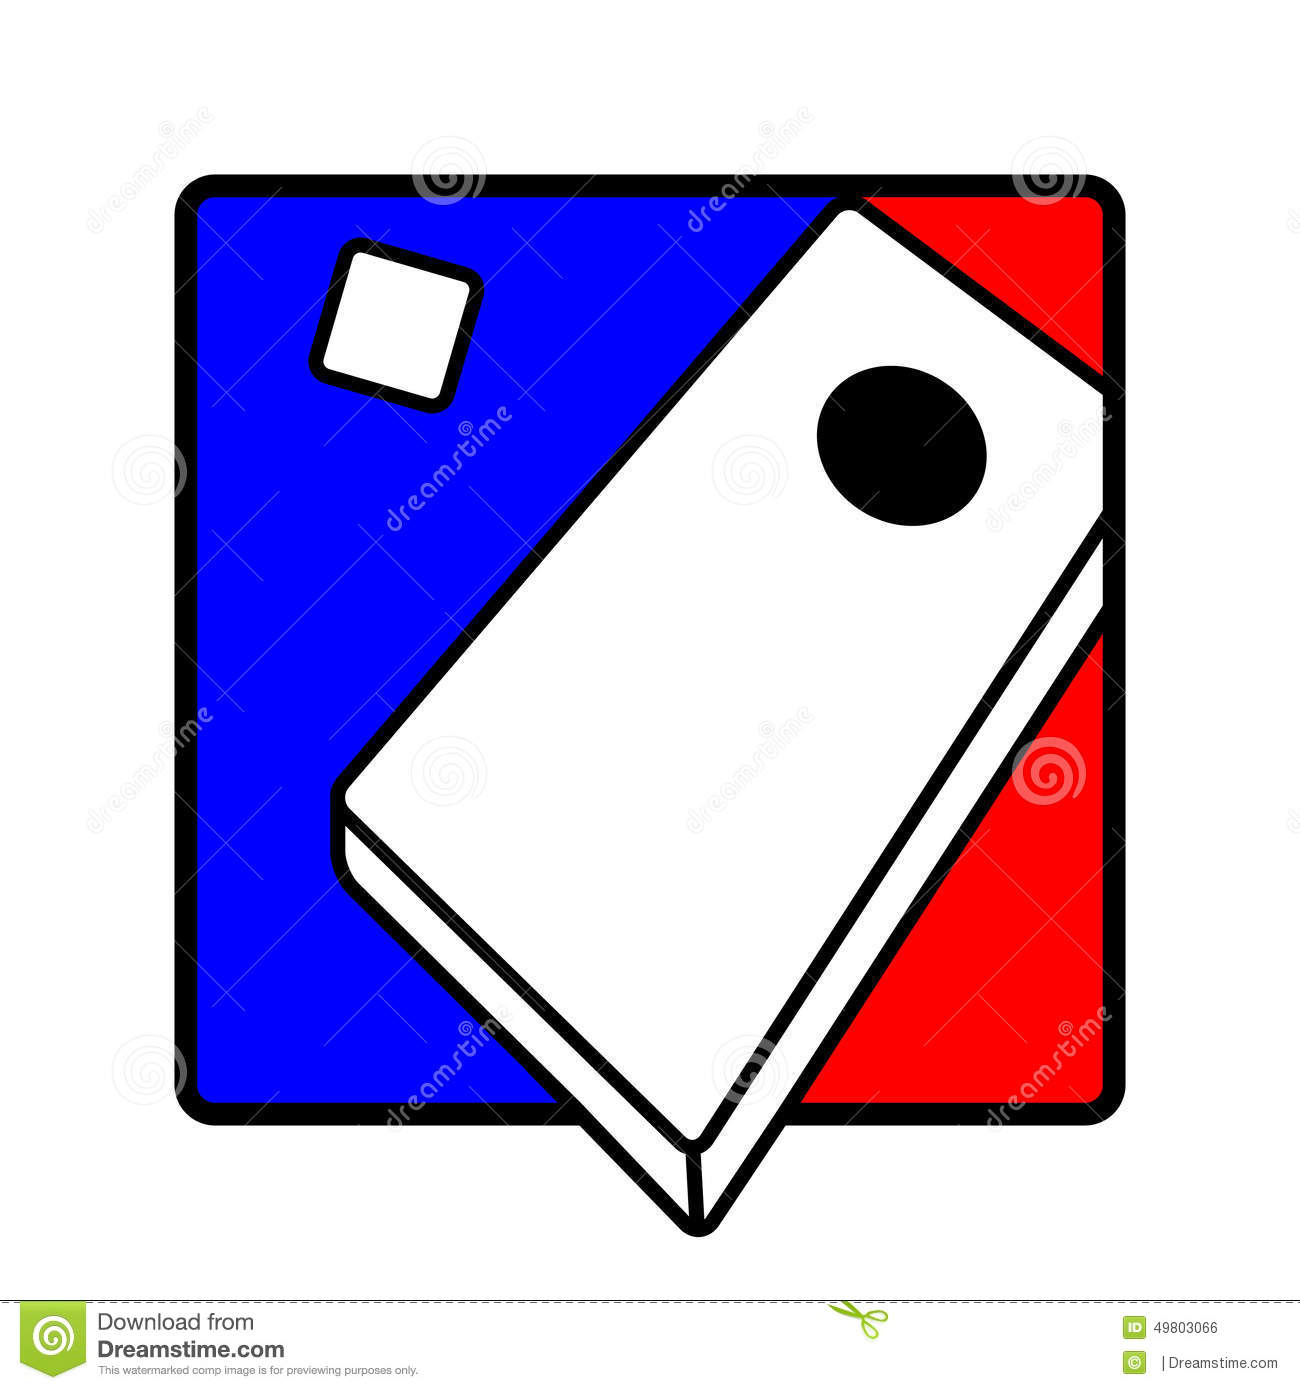 Corn Hole Clip Art. Corn hole icon symbol